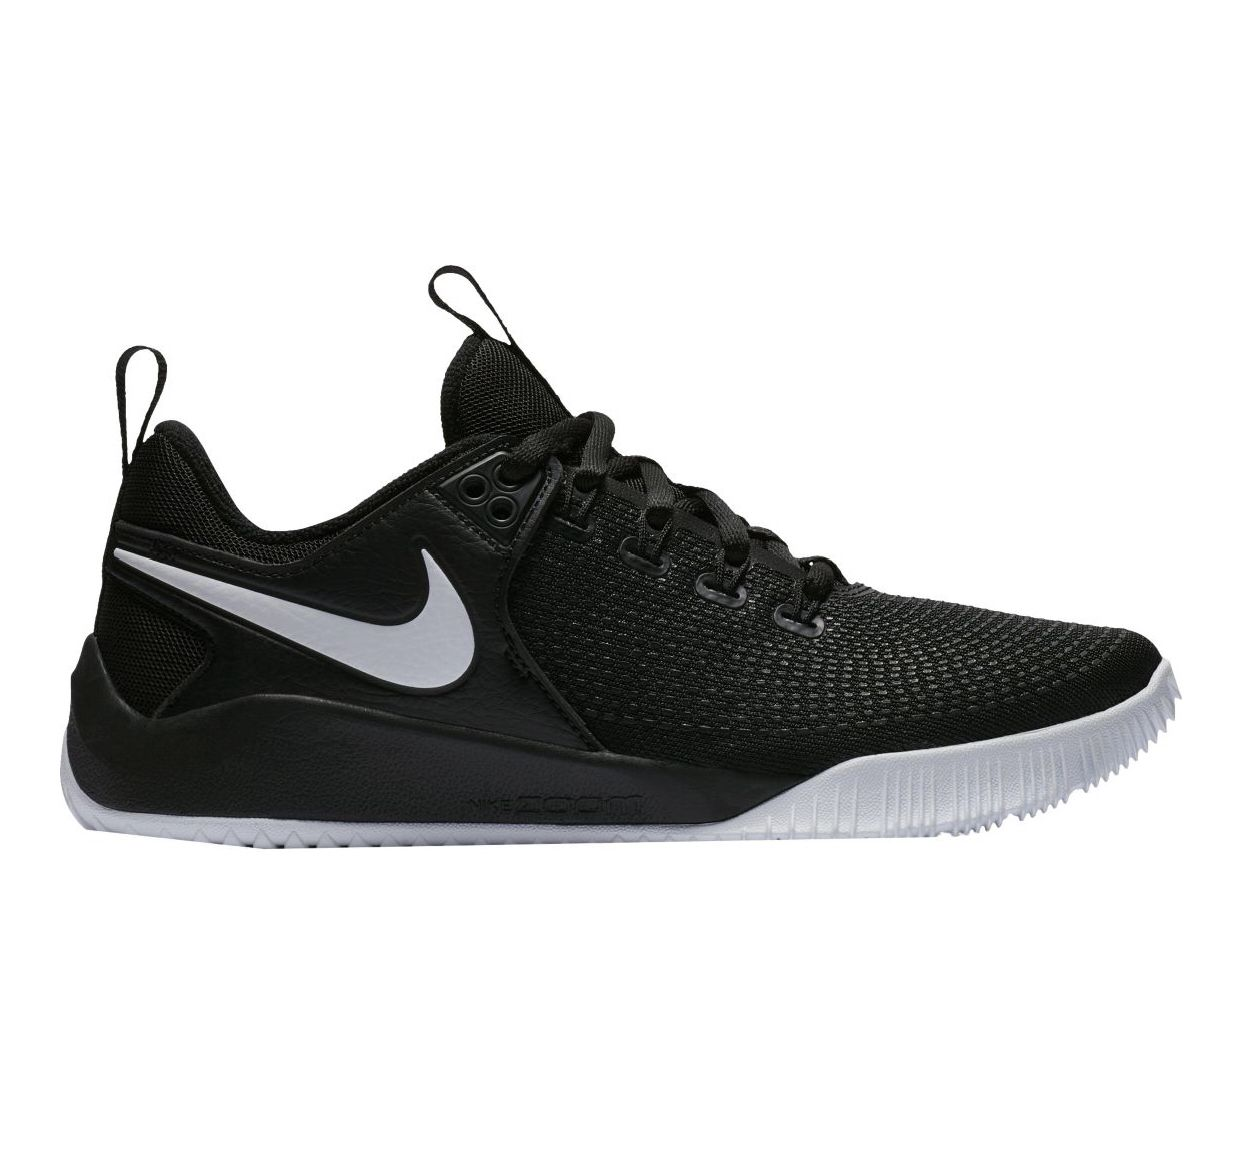 Hyperace Volleyball Shoes Nike Volleyball Shoes Nike Shoes Online